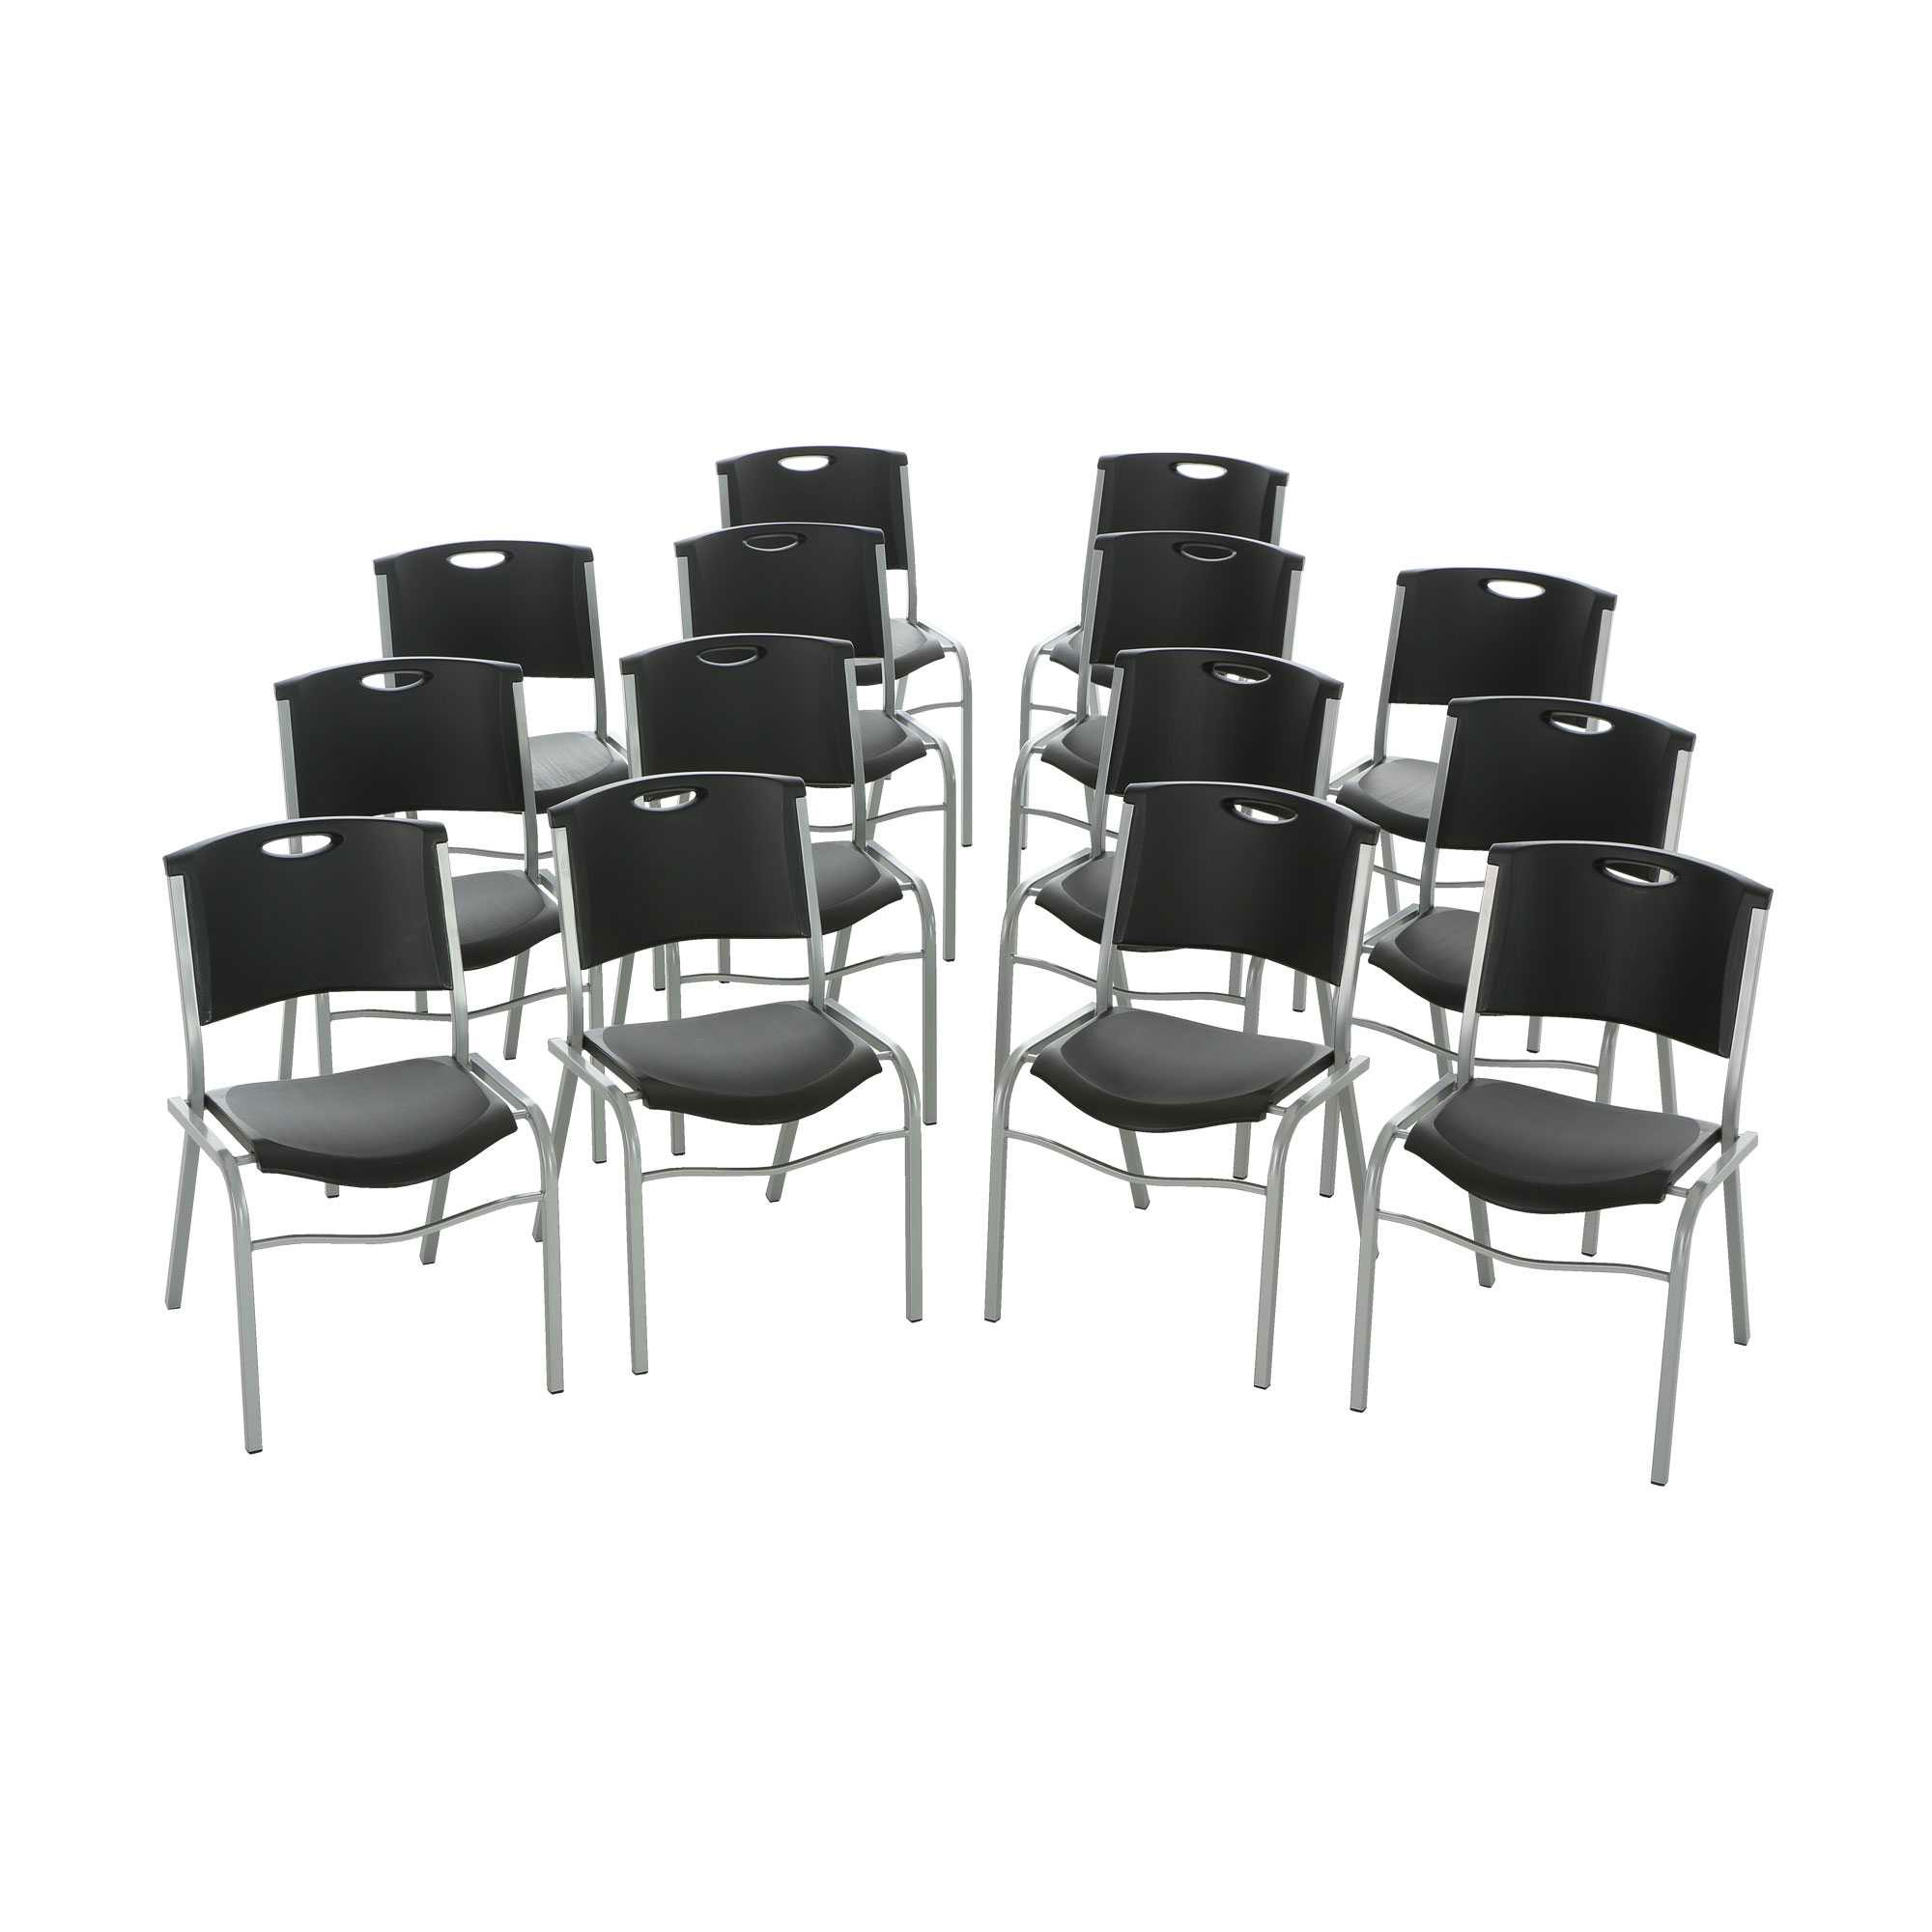 Lifetime 2830 Lifetime Black Stacking Chair on Sale & Free Shipping